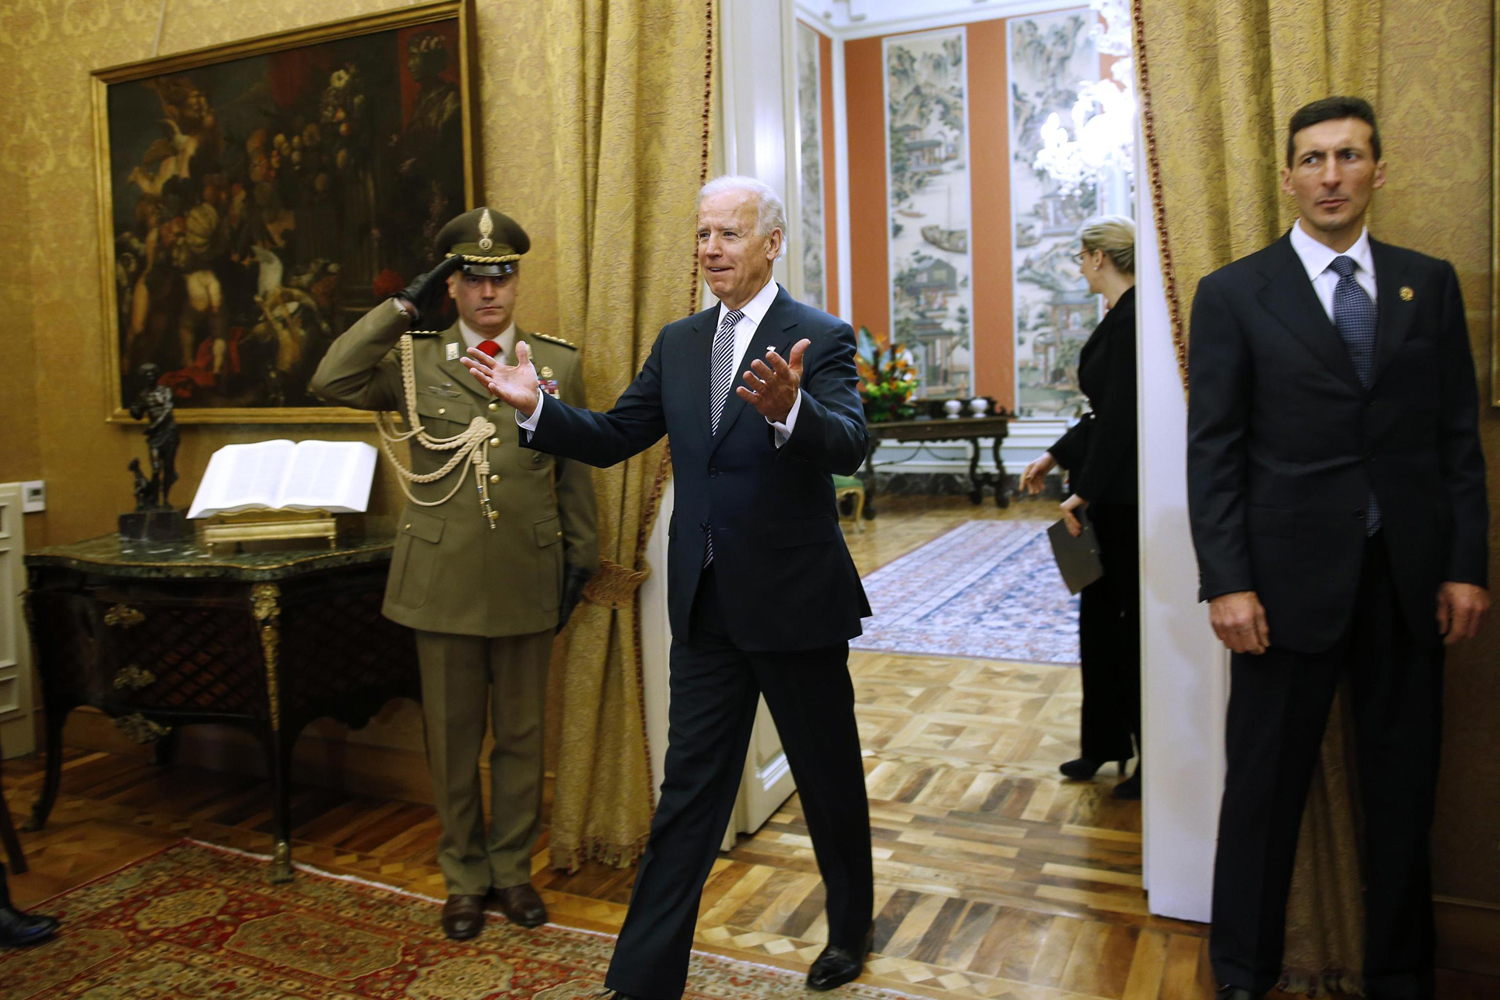 March 18, 2013. U.S. Vice President Joe Biden gestures while entering to meet Italy's President Giorgio Napolitano at the Quirinale palace in Rome, Italy.